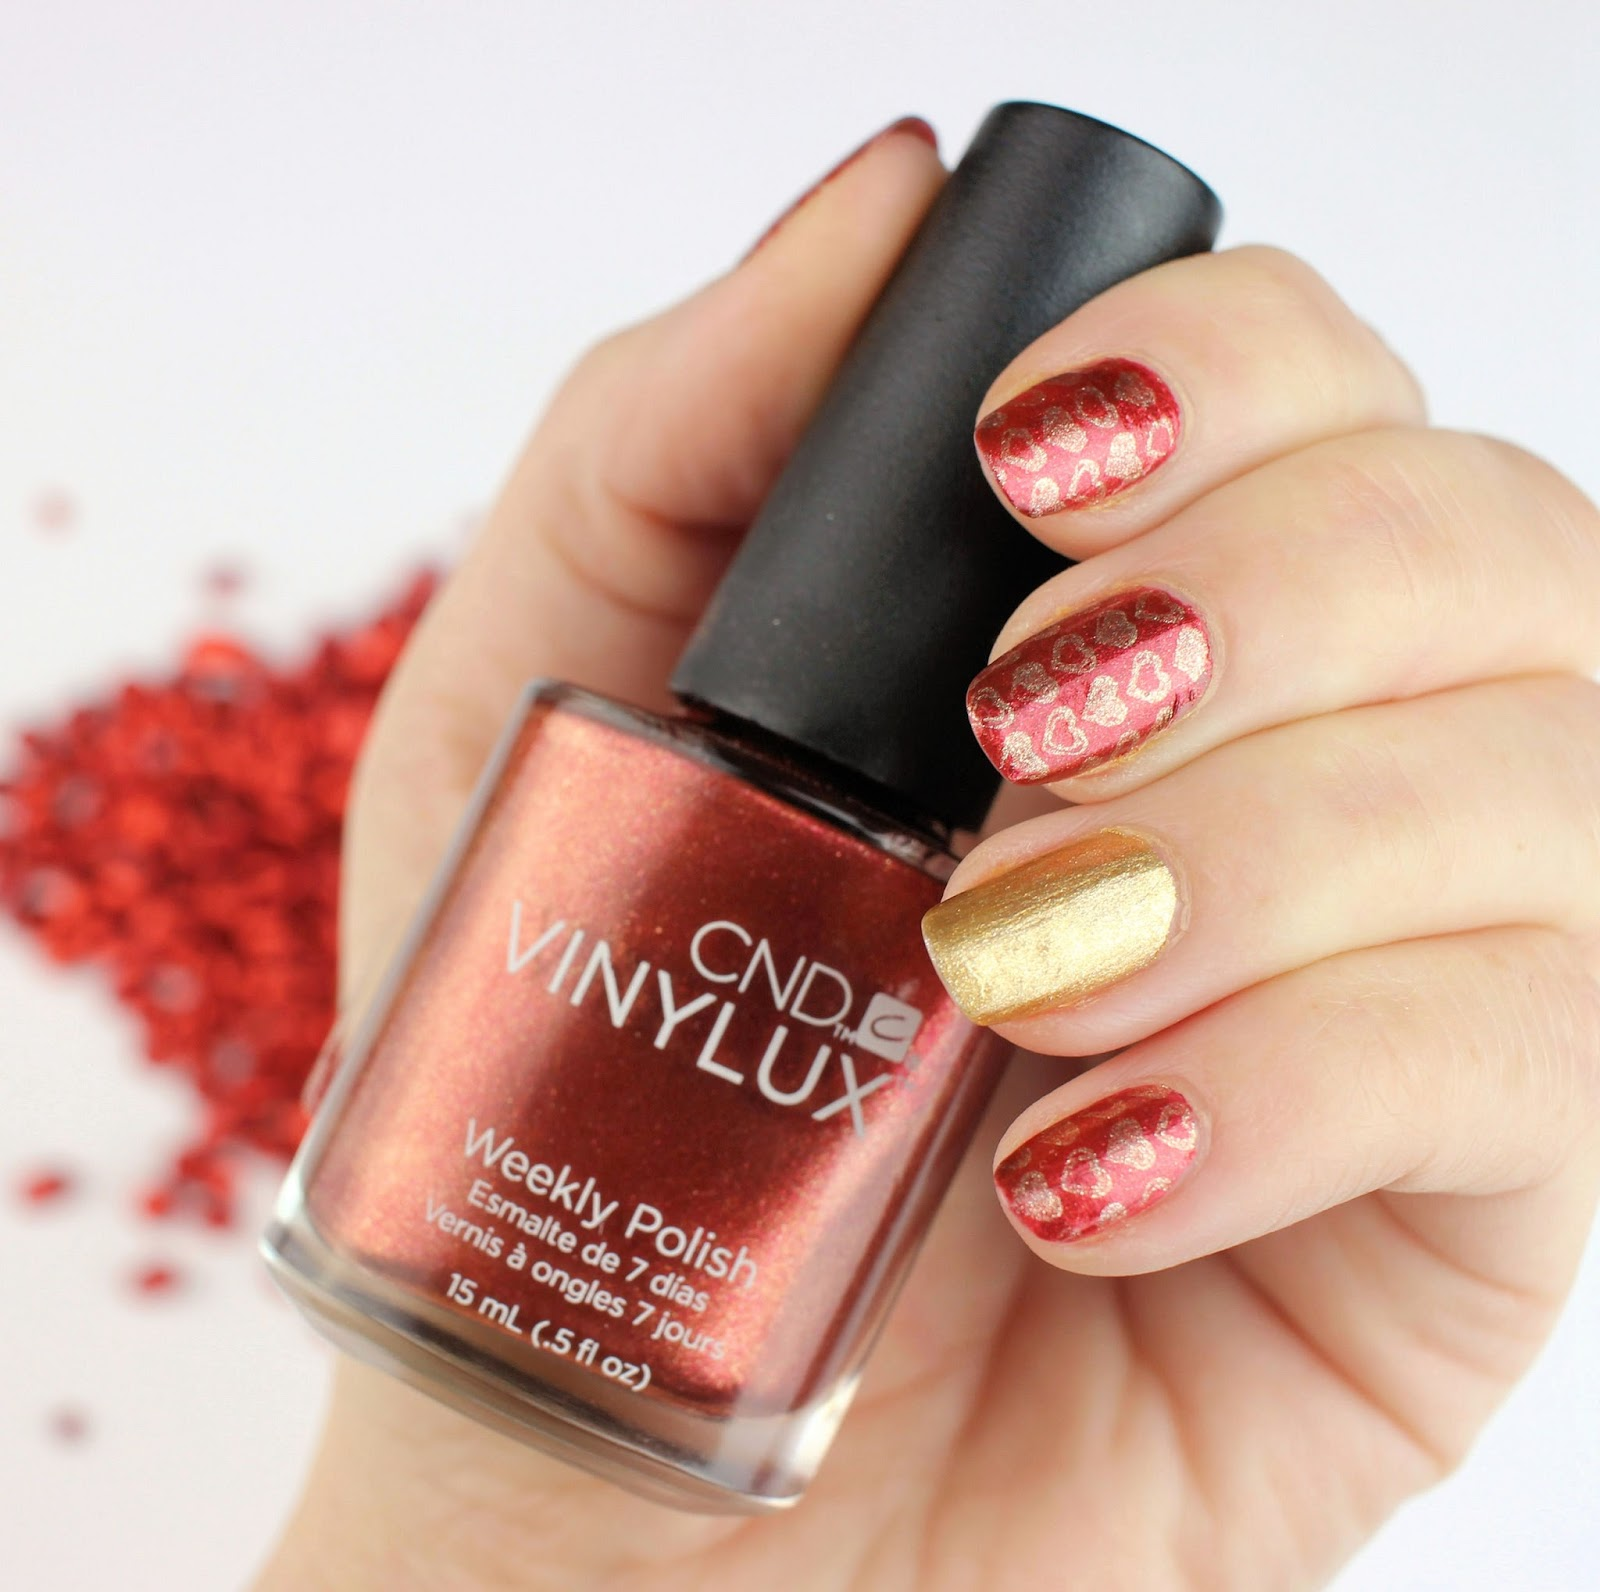 CND, Vinylux, Weekly Polish, rescue rxx, nagellack, nagelpflege, Creative Nail Design, valentinstag, nageldesign, craft culture, review, swatches, gold, brass button, hand fire, herbst kollektion, top coat,